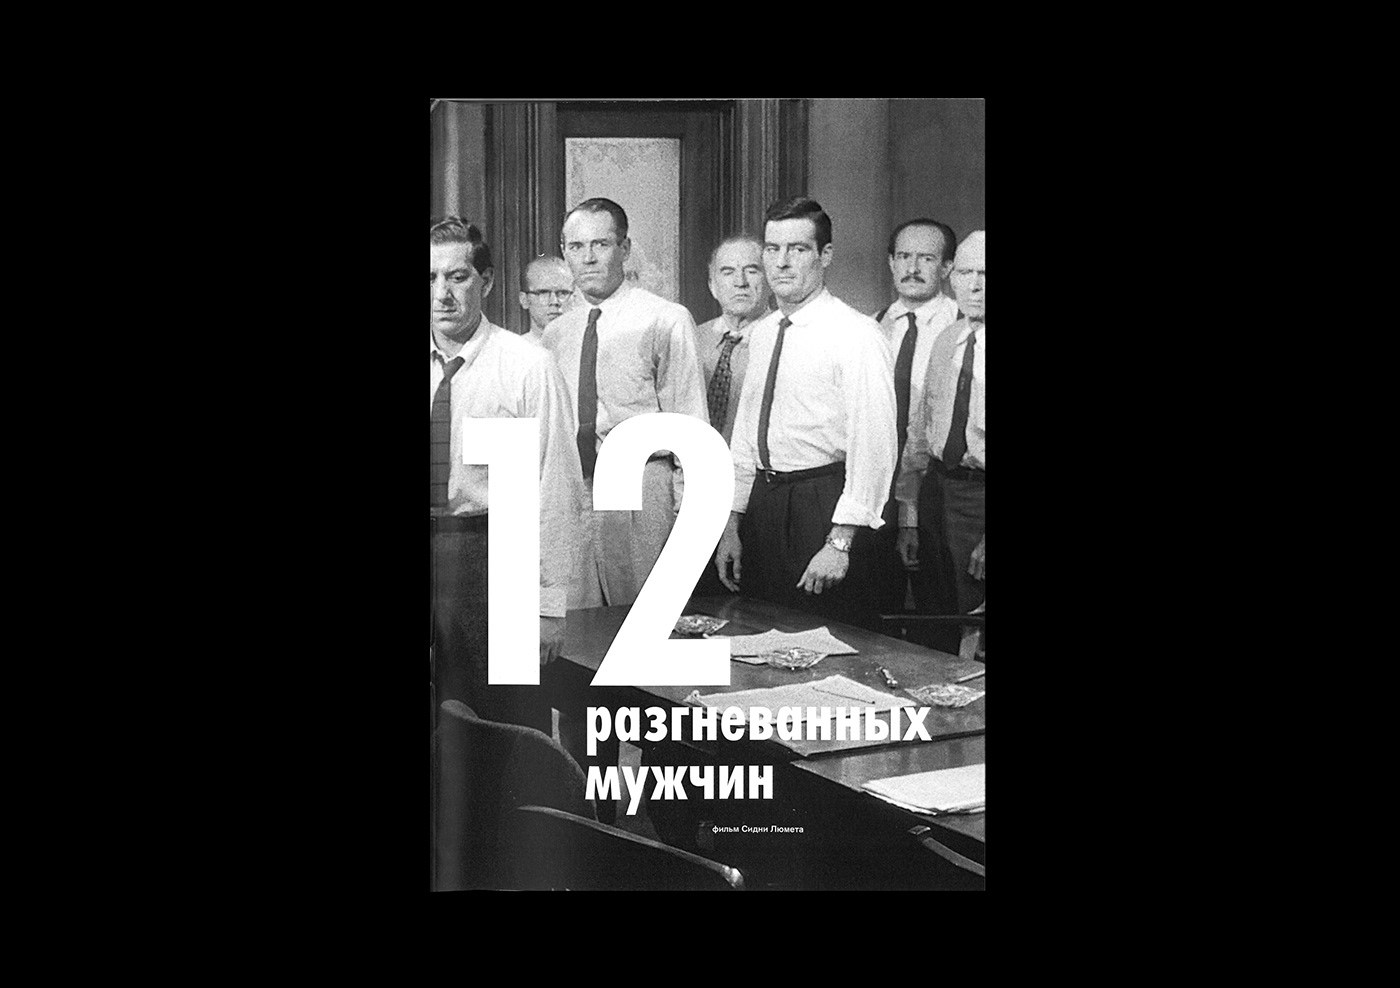 12 angry men cinematography Booklet Layout book design film booklet 1950s